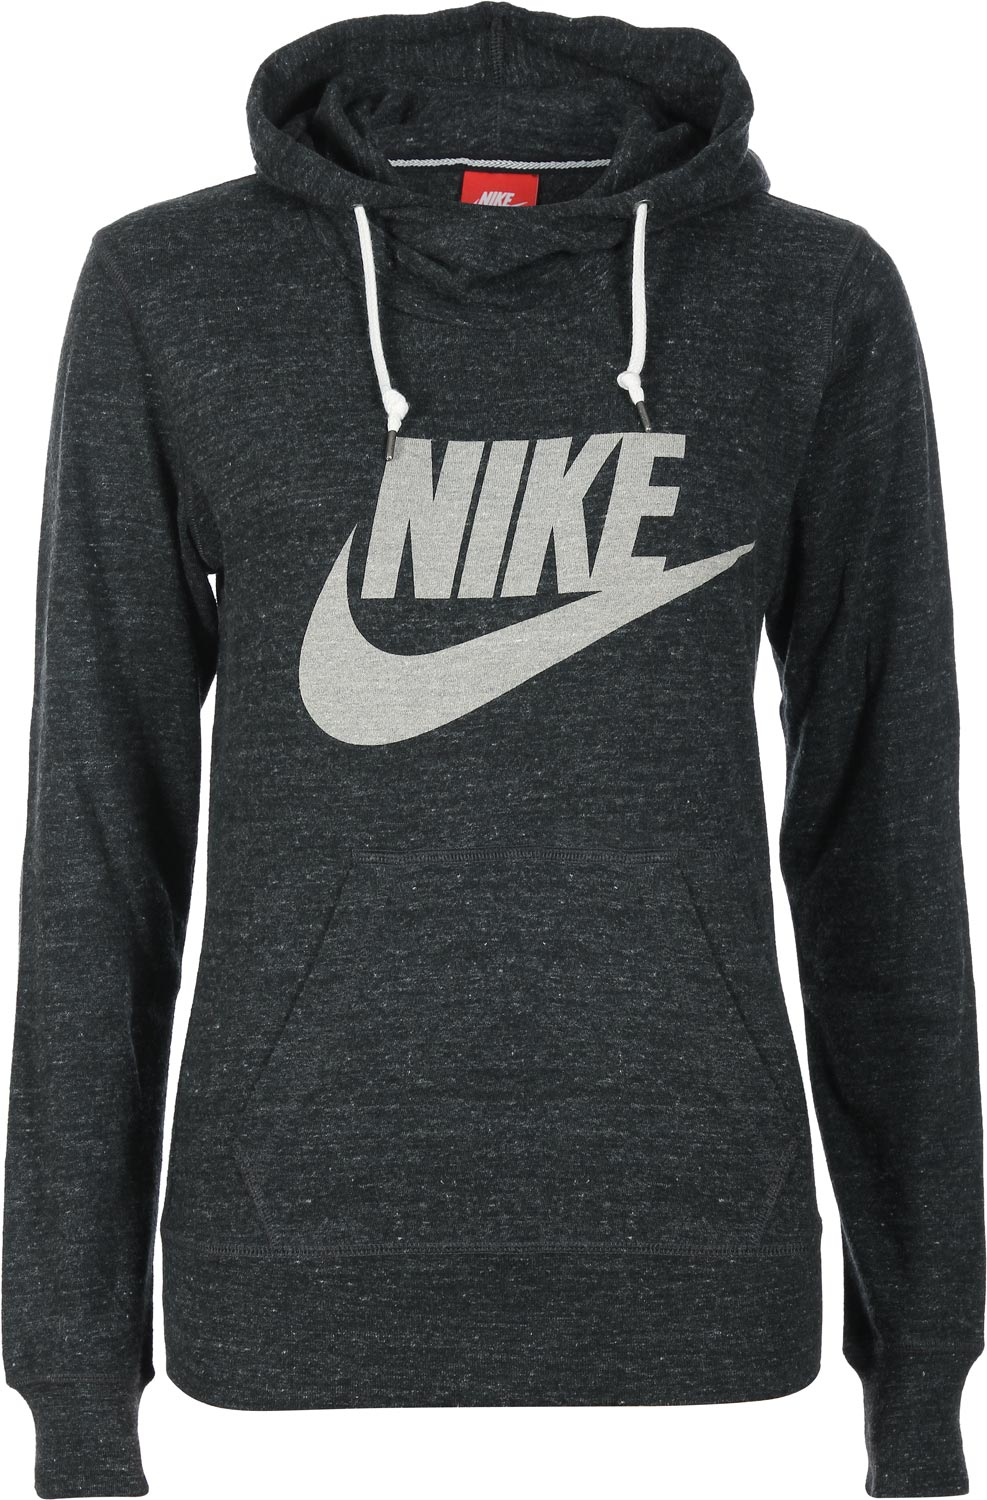 Nike Gym Vintage W hoodie pink heather